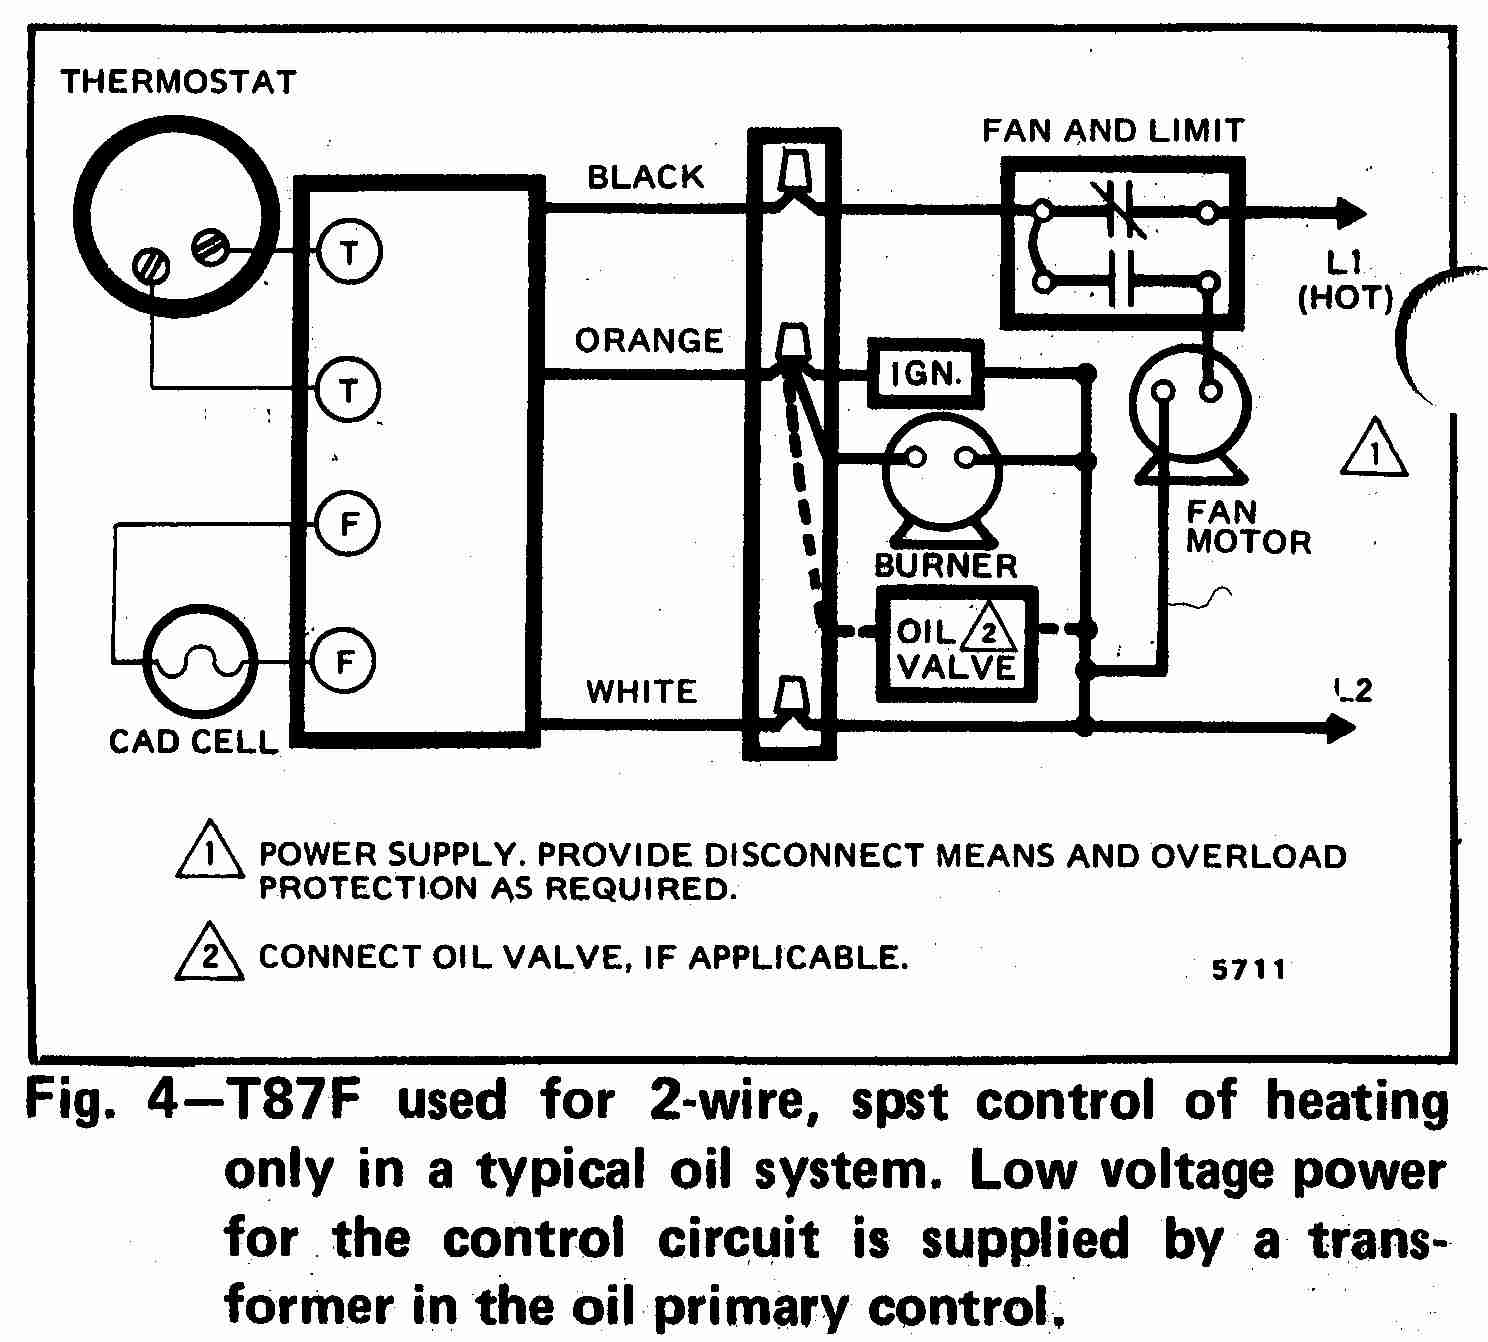 TT_T87F_0002_2W_DJF hvac control wiring diagram hvac compressor wiring diagram \u2022 free Honeywell Thermostat Wiring Diagram at n-0.co